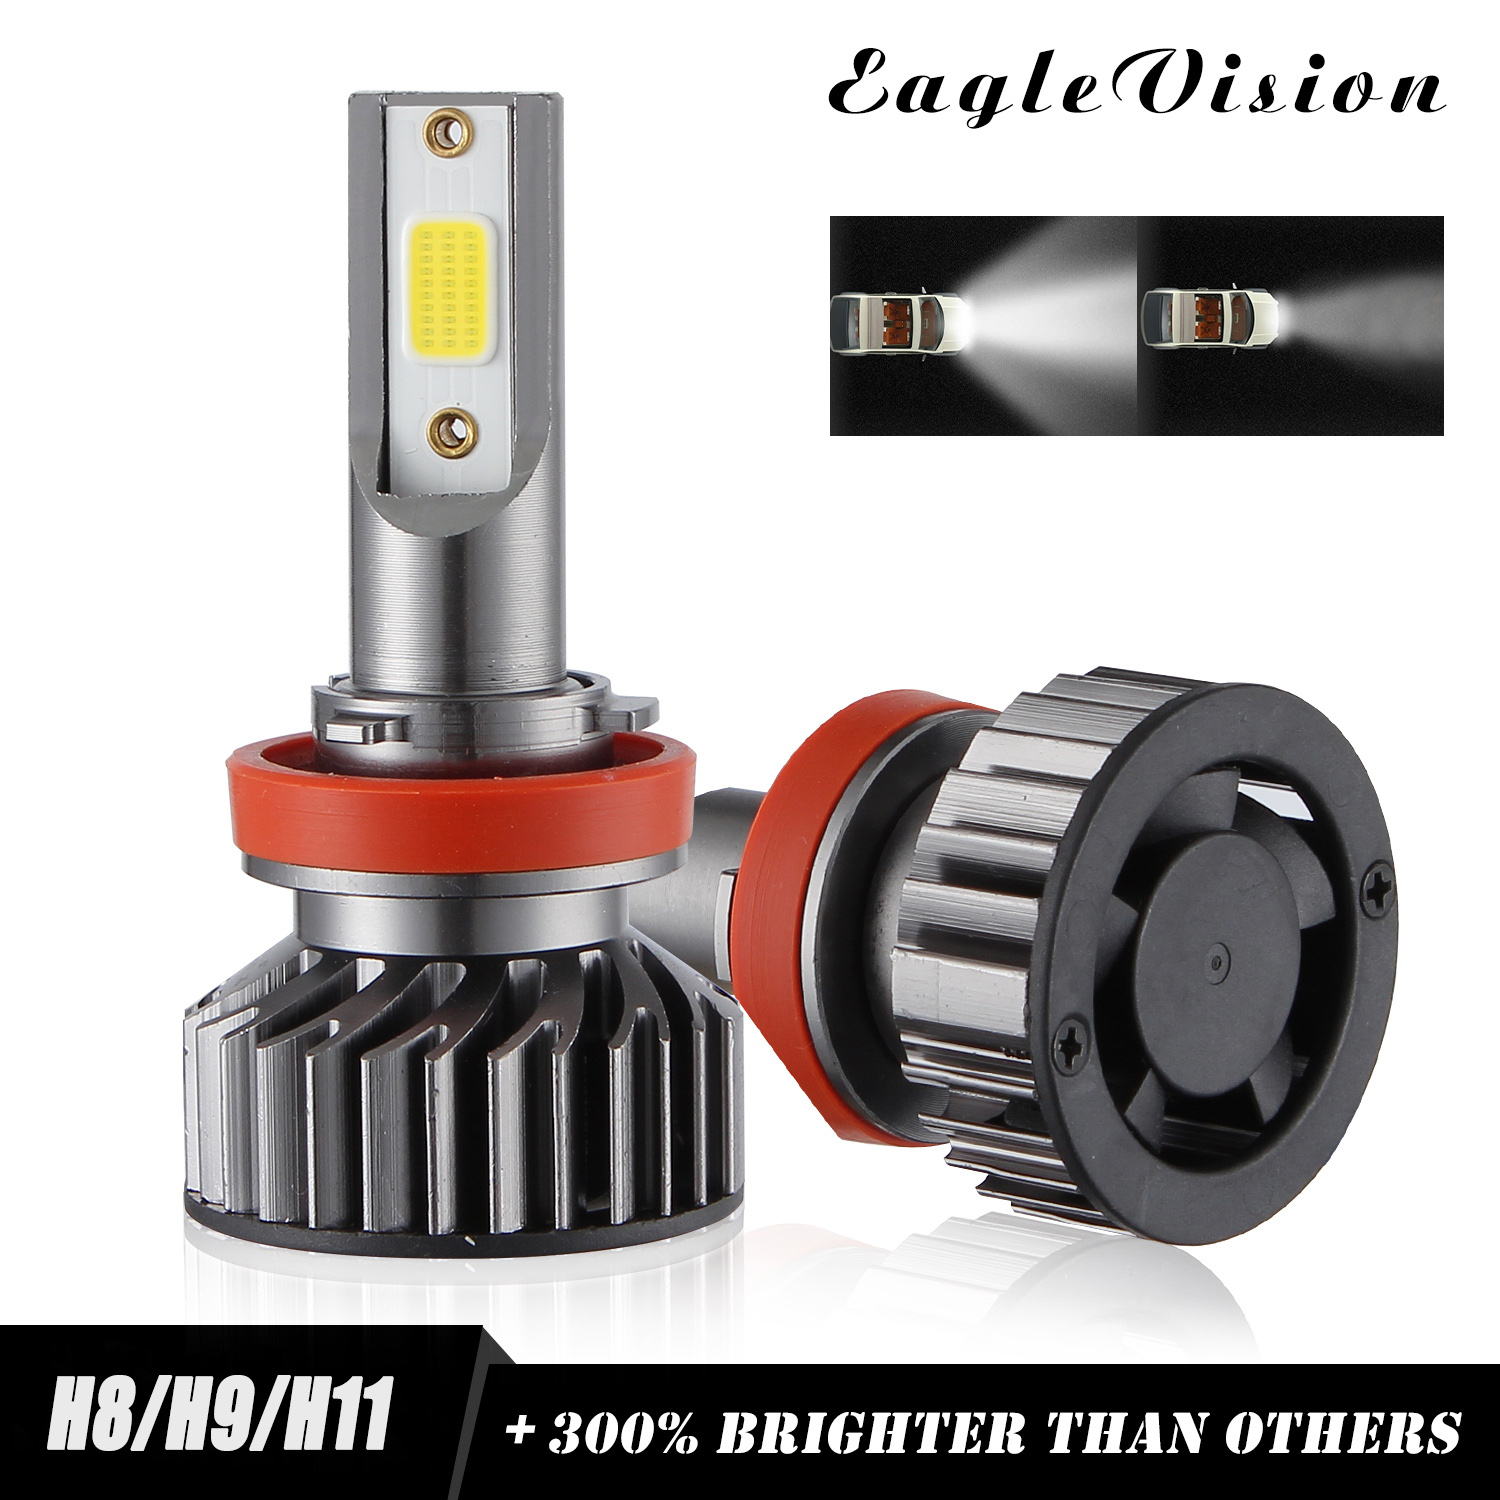 2PCS Mini Car LED Headlight Bulb H1 H7 H8/H9/H11 9005/HB3 9006/HB4 H4/HB2/9003 Hi/Lo 72W 10000LM 6000K Car Headlamp H8/H9/H11